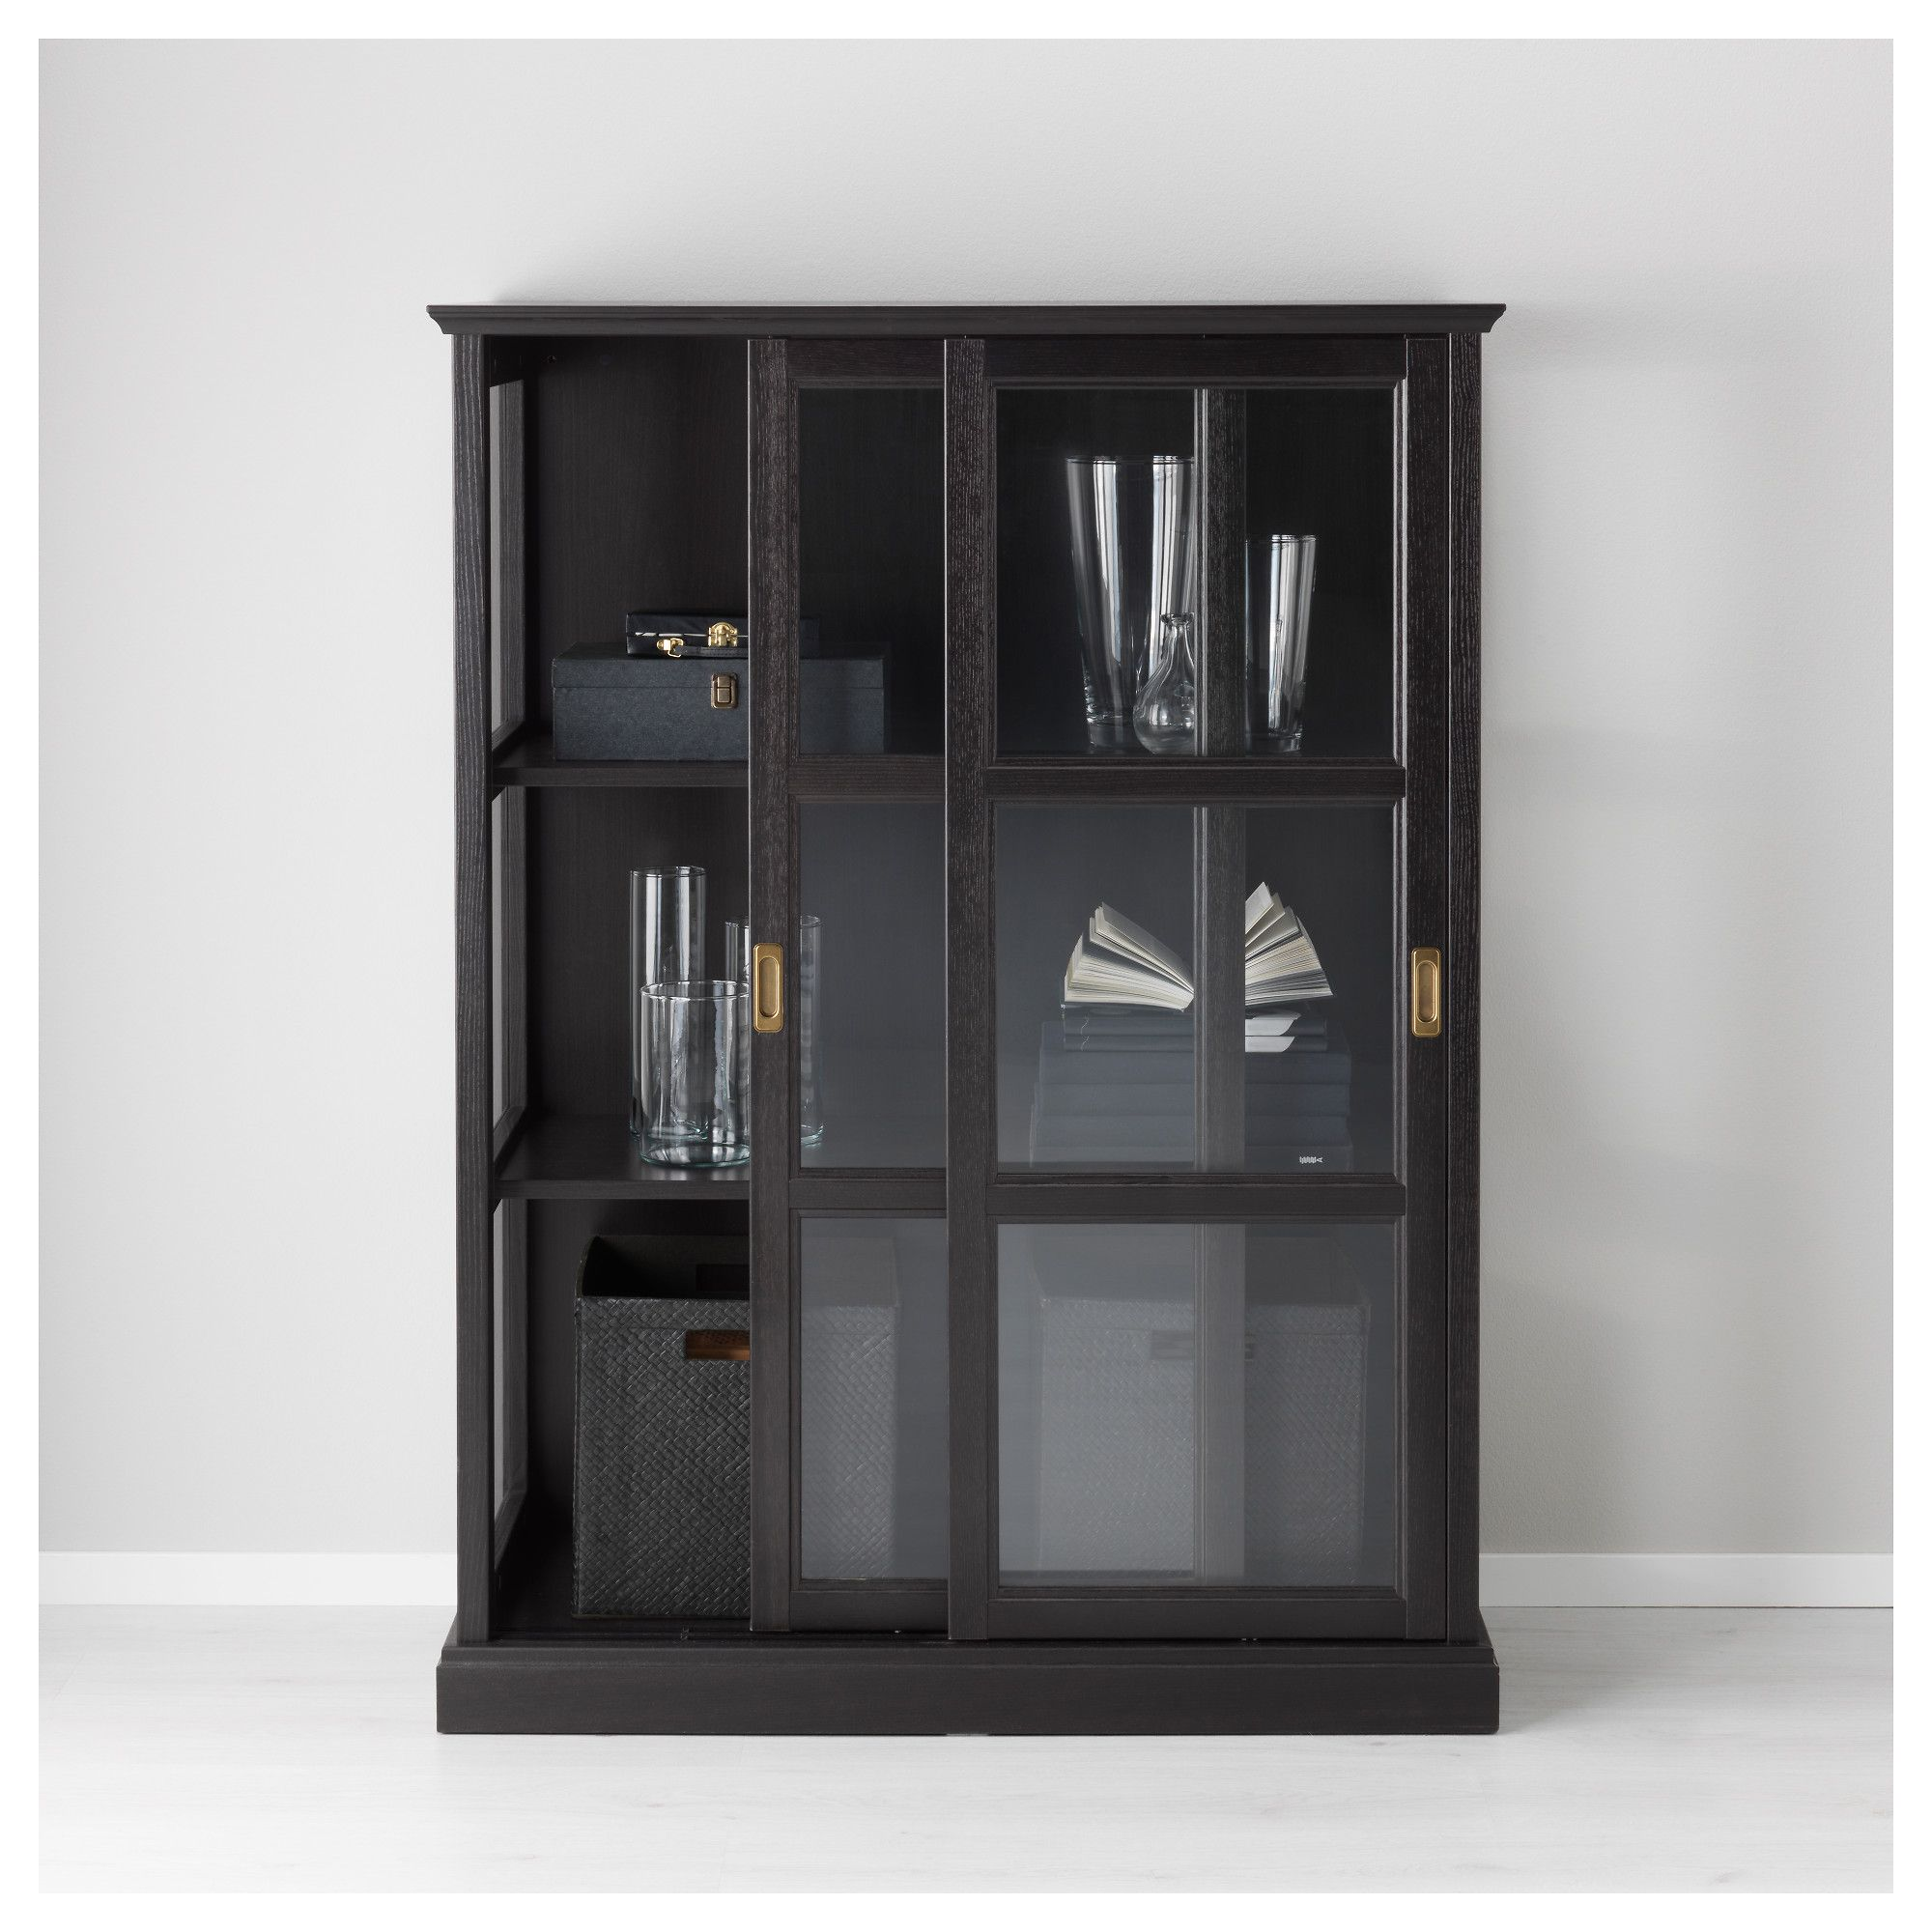 Malsj Glass Door Cabinet Black Stained 103×141 Cm Glass Doors  # Meuble Tv But Noir